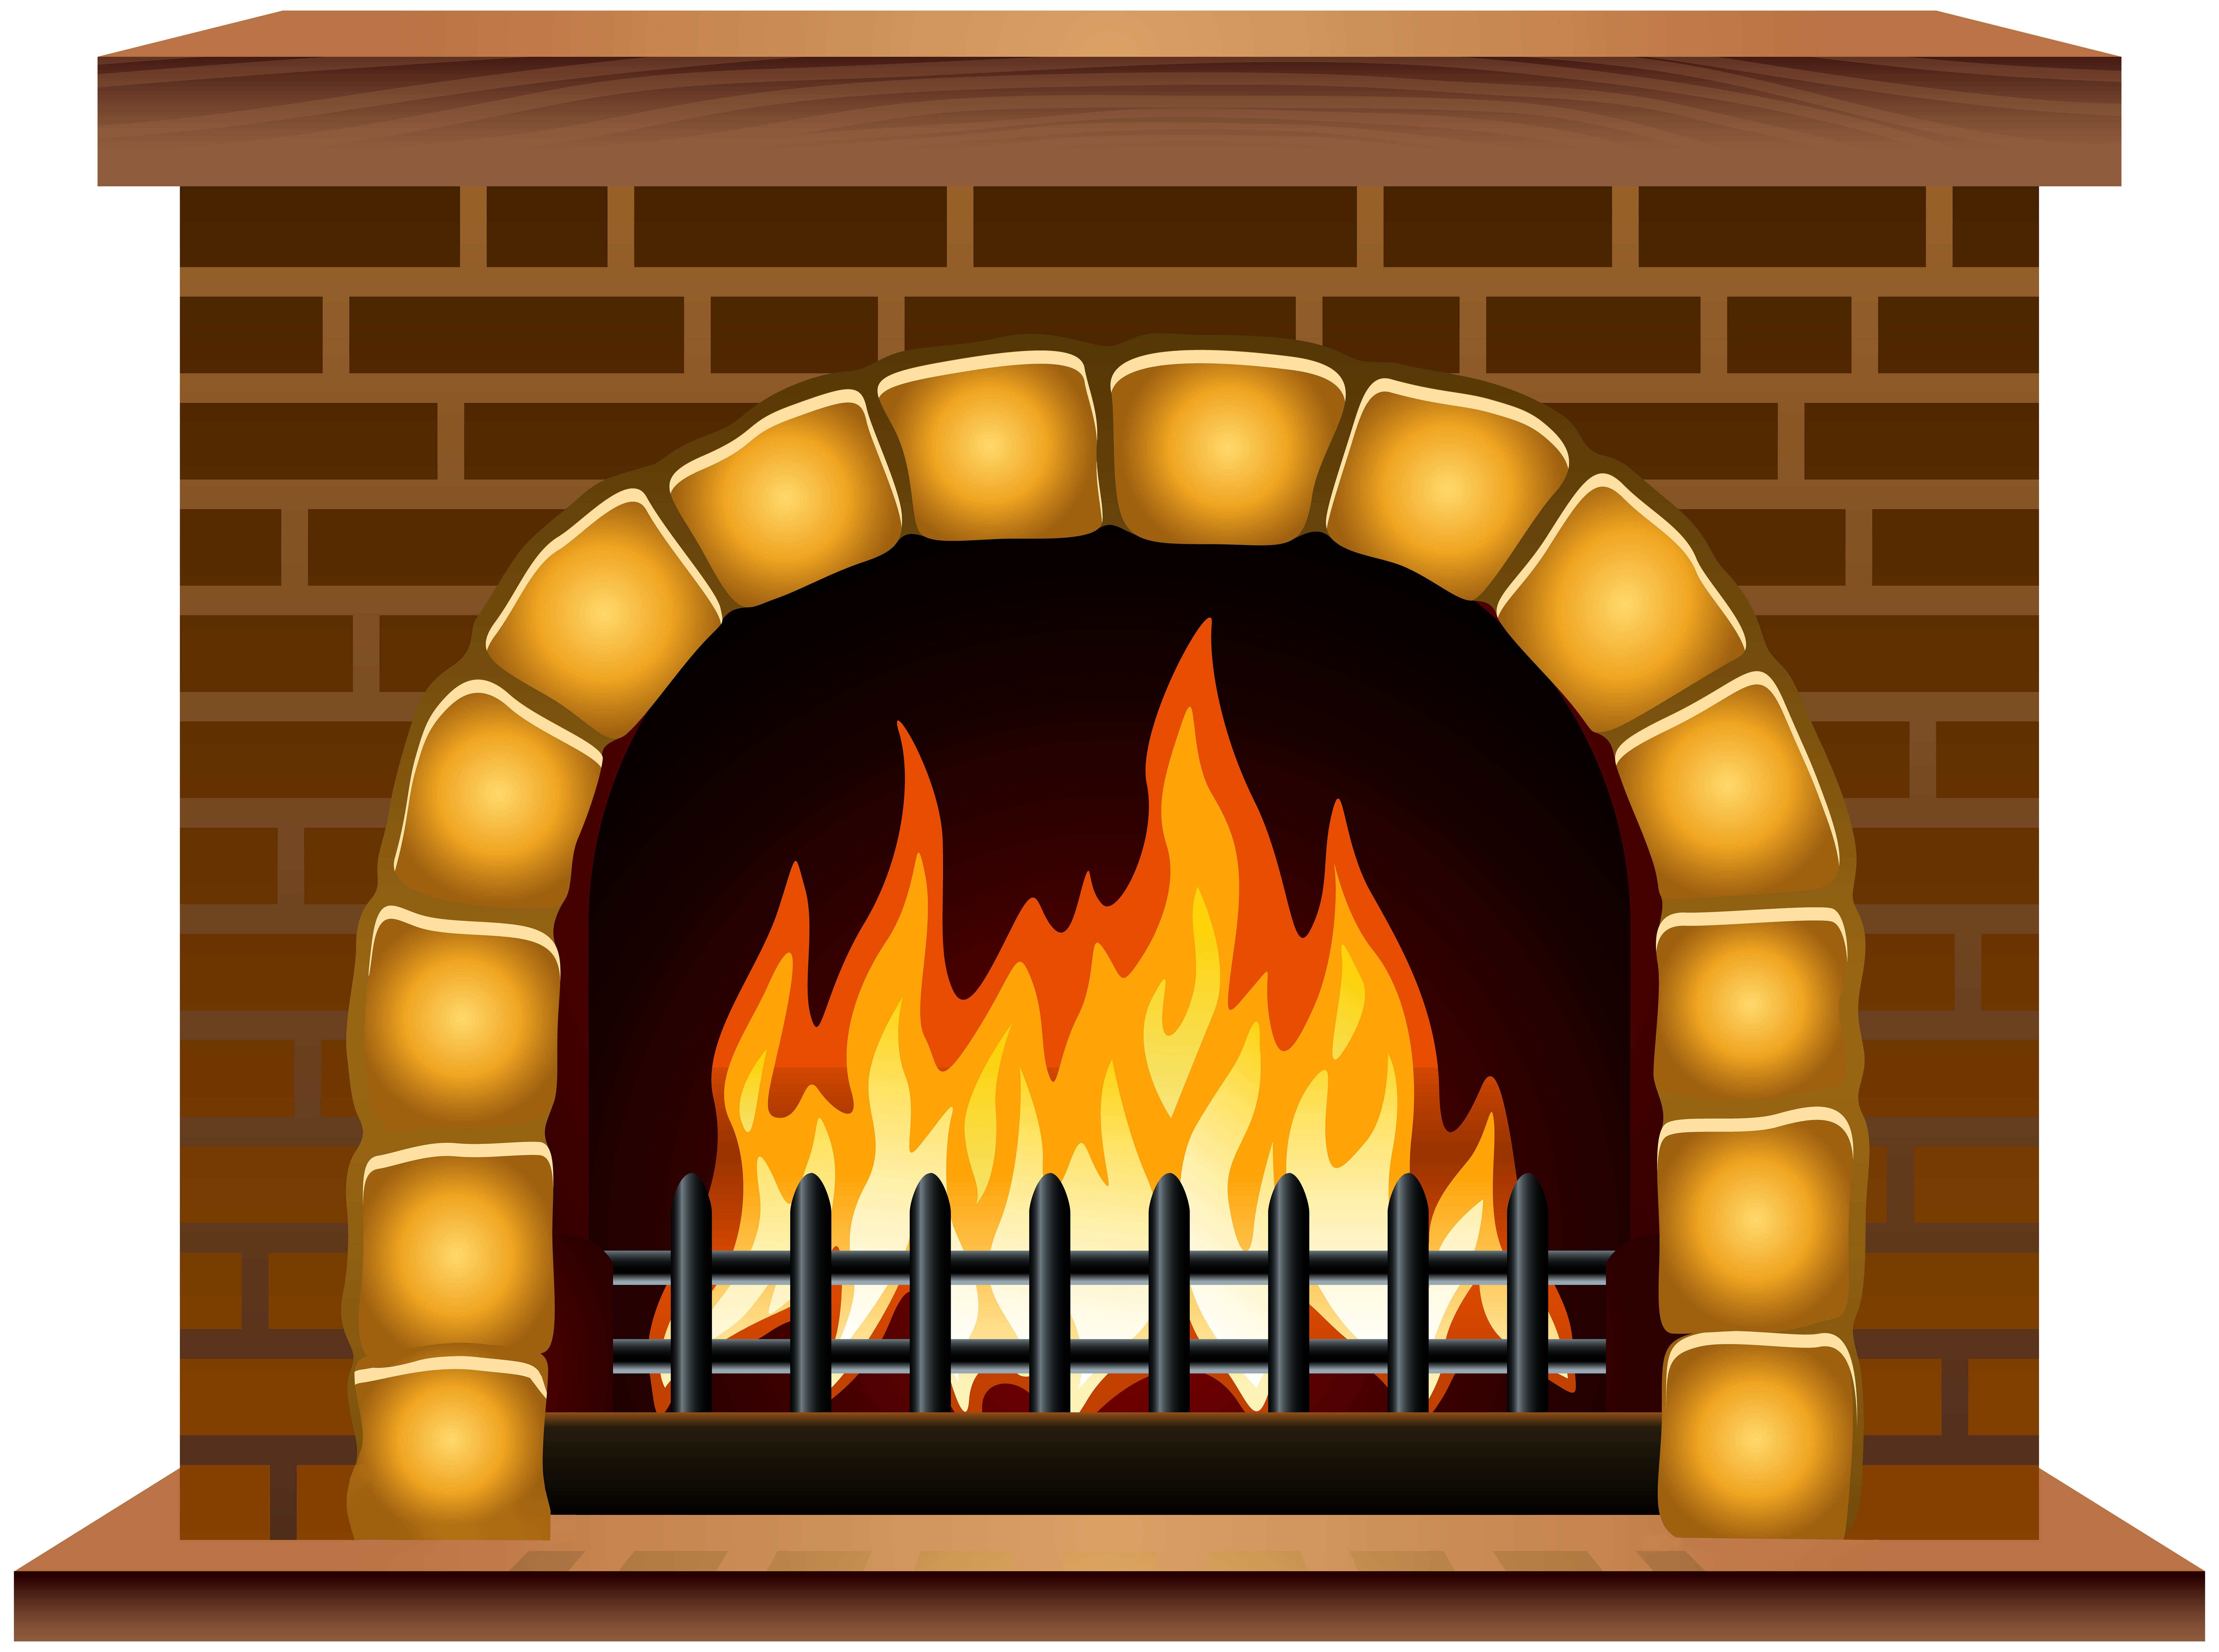 clipart royalty free library Png clip art image. Fireplace clipart.